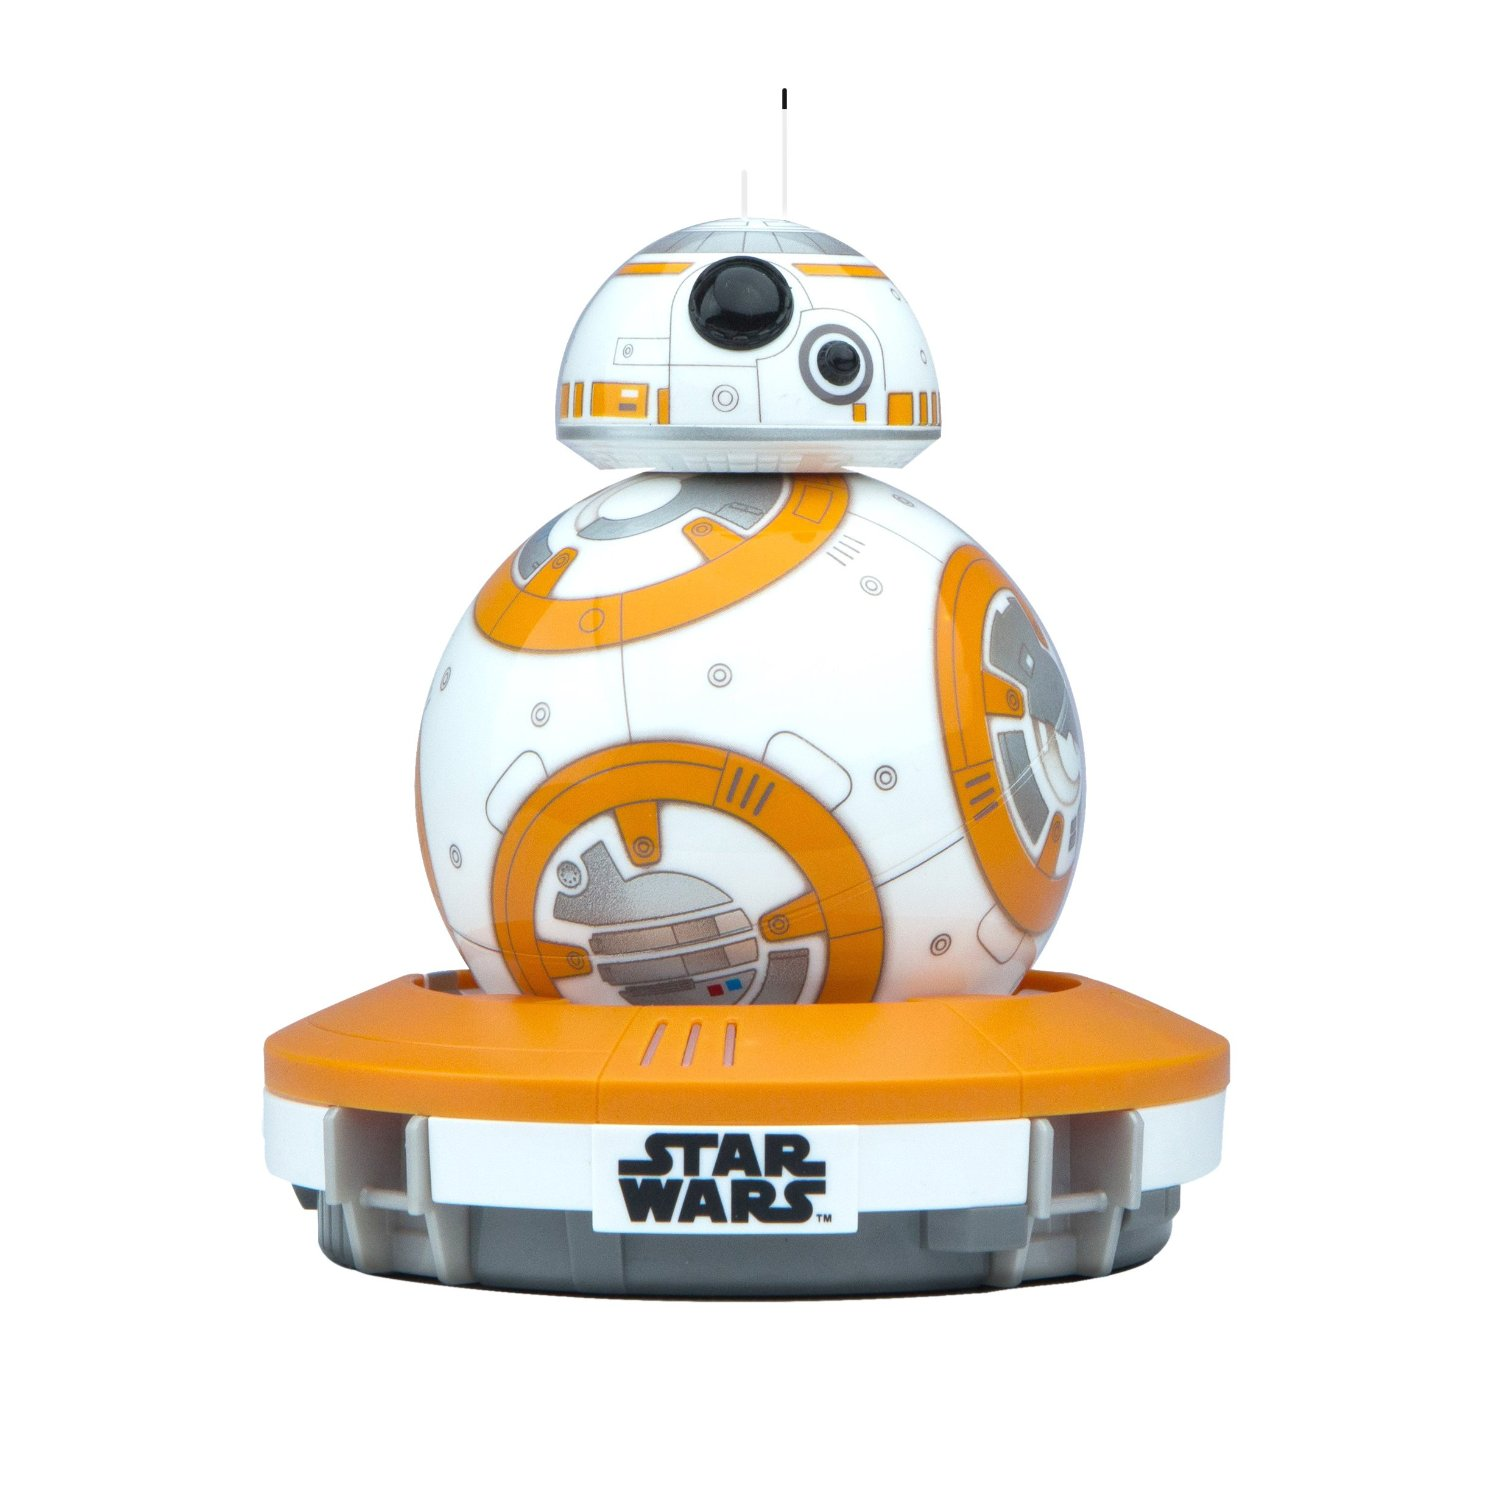 Star Wars BB8 Toy